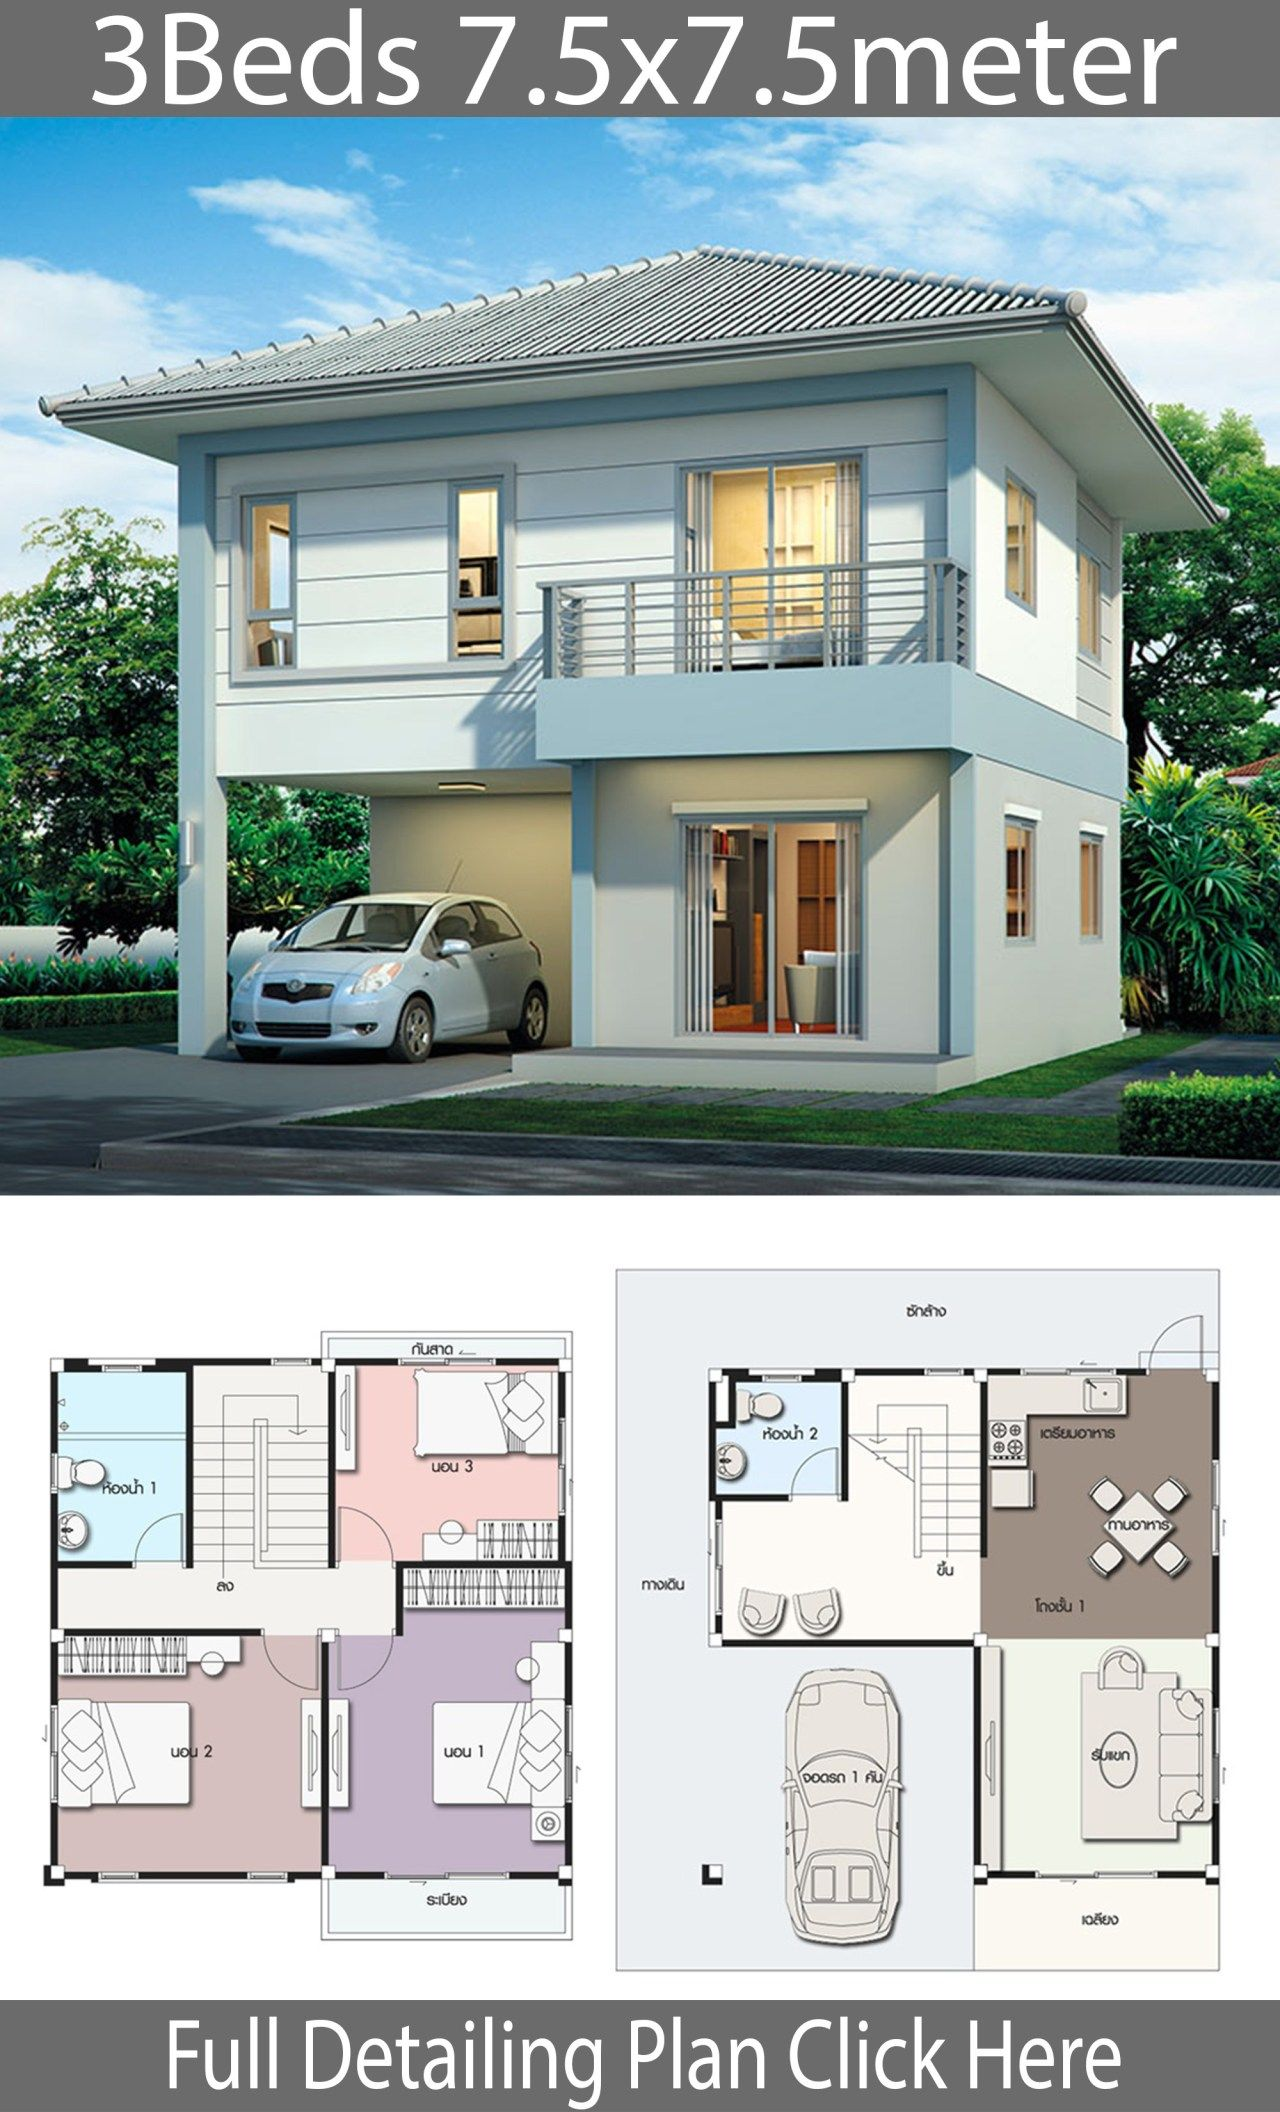 Modern House Design Plan 7 5x7 5m With 3beds Home Ideas Modern House Design Modern House Plans House Construction Plan